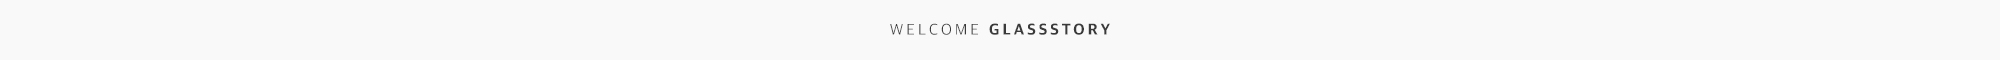 welcome glassstory